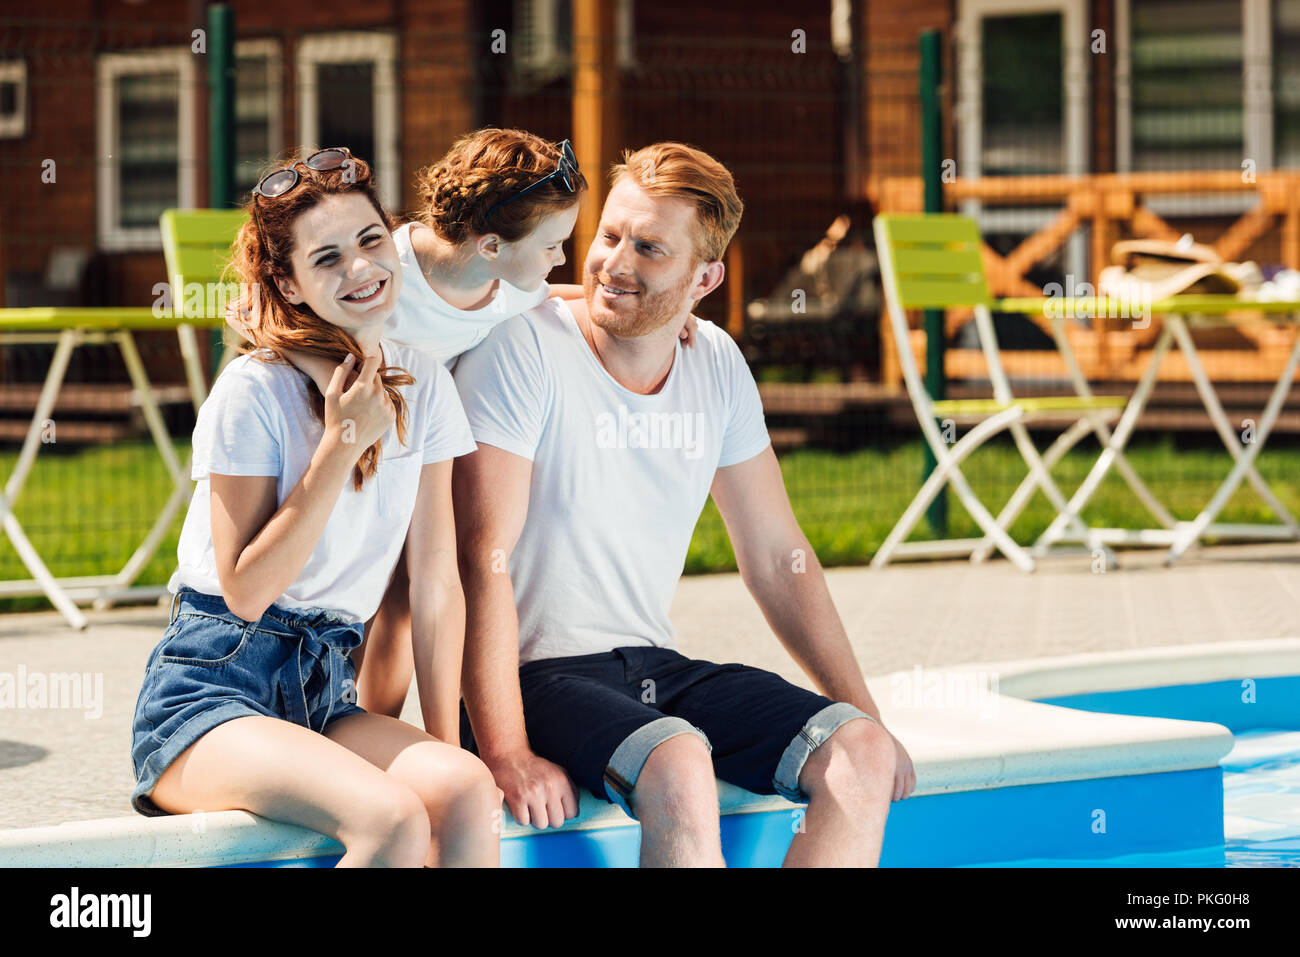 beautiful young family sitting at poolside and embracing together - Stock Image